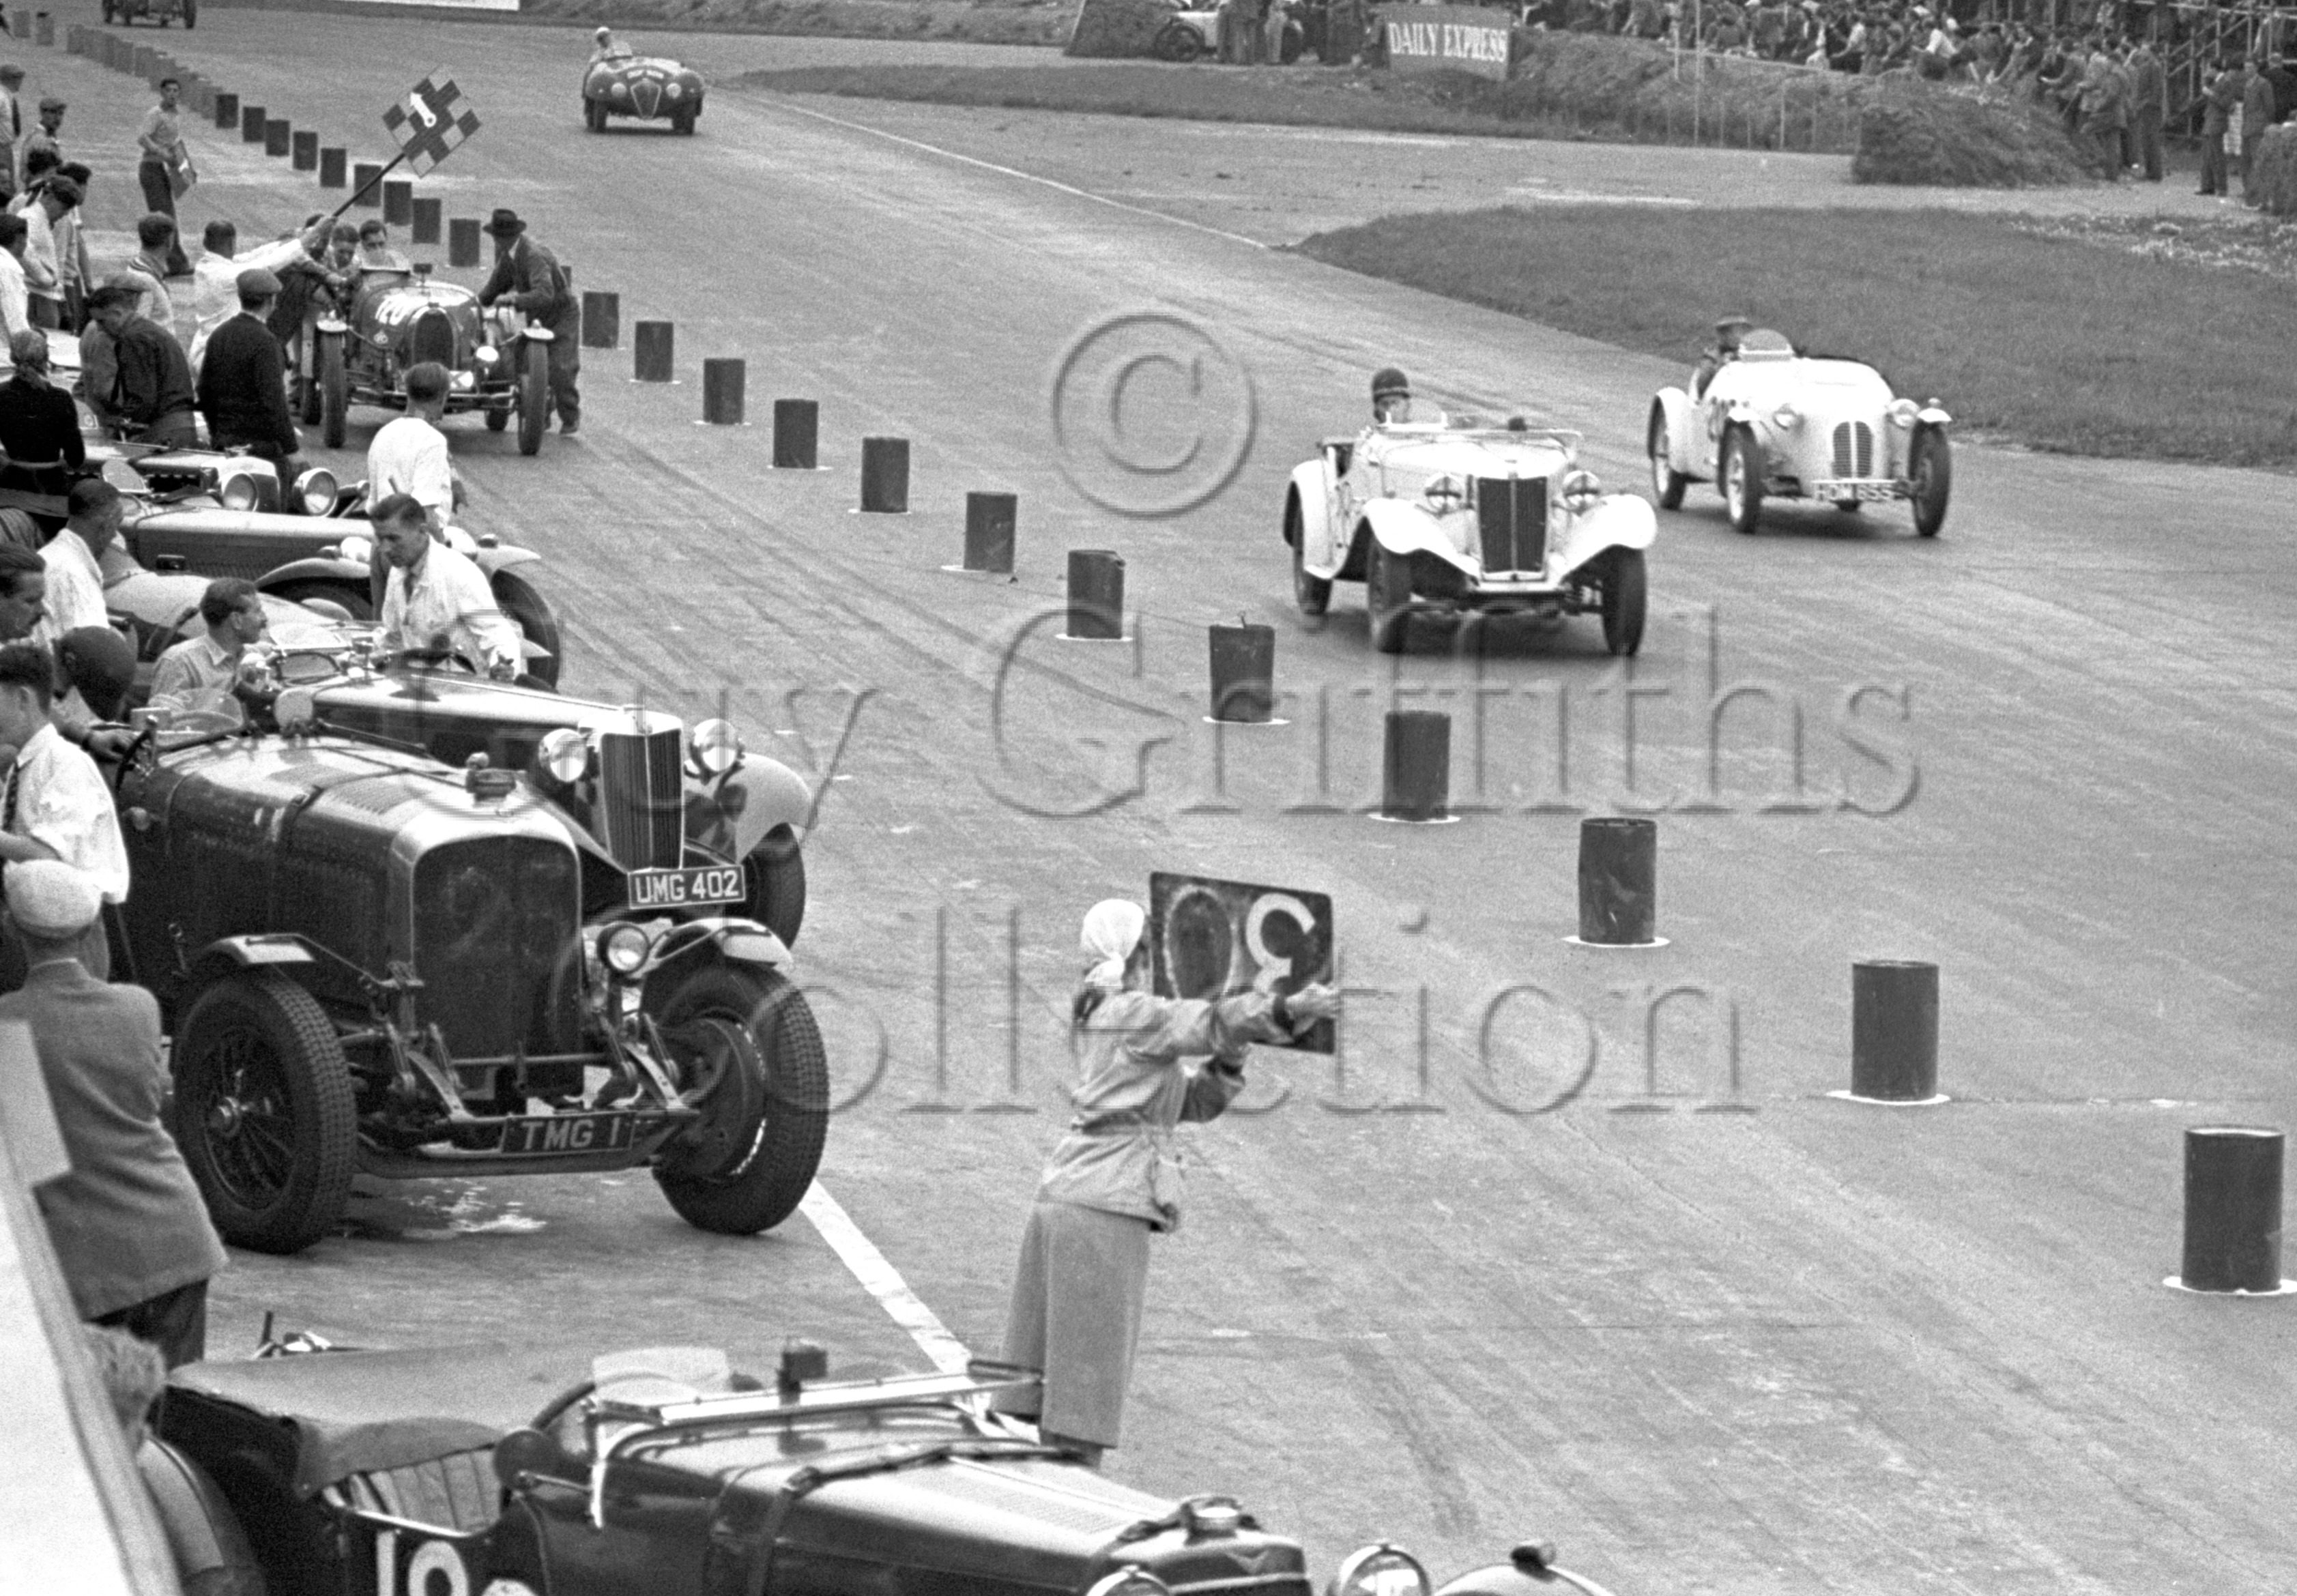 60-271–H-Porteous–Porteous-Buckler–Silverstone–30-08-1952.jpg - The Guy Griffiths Collection